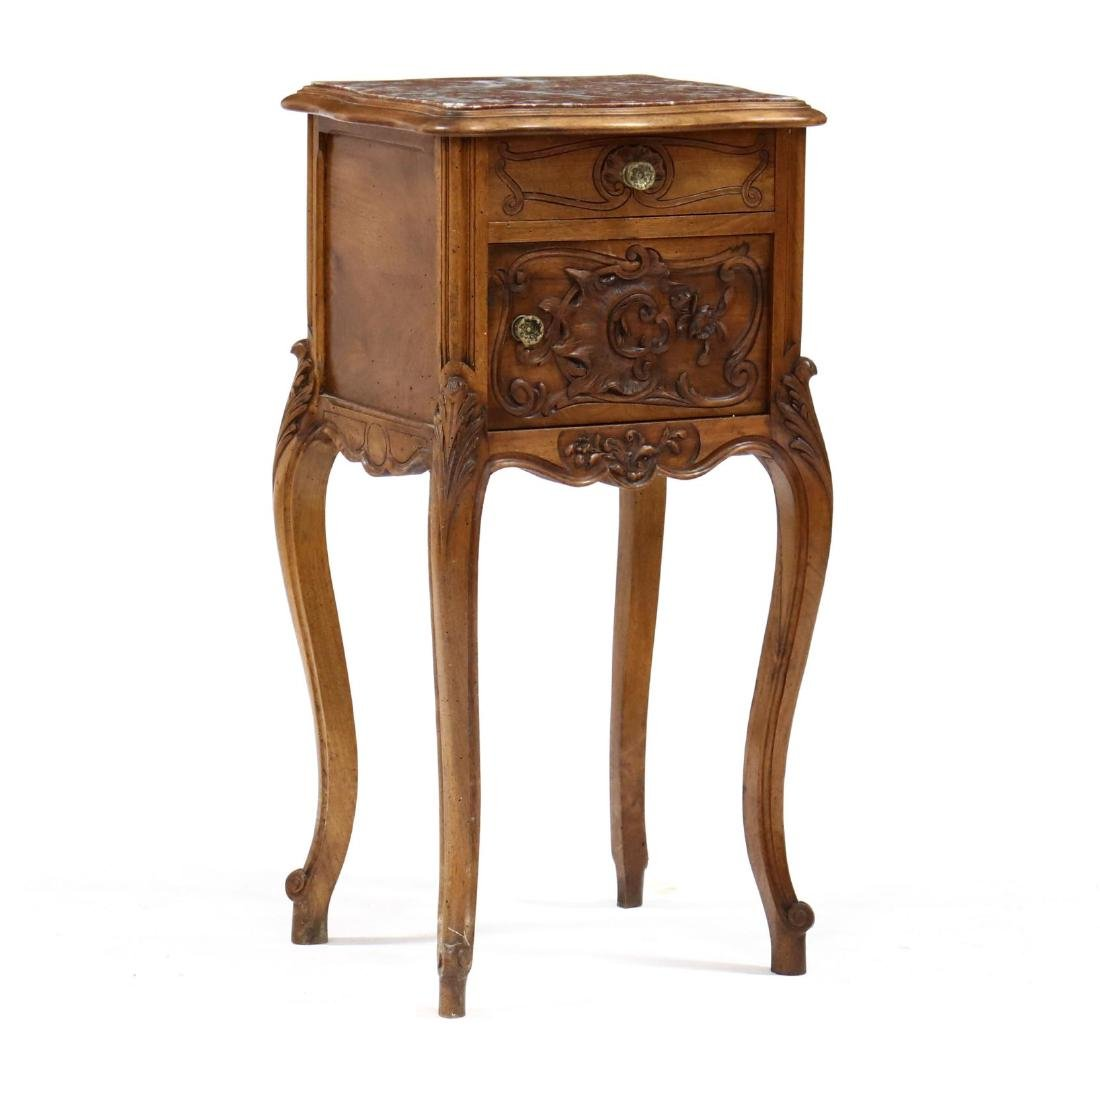 French Provincial Carved Walnut Marble Top Smoking